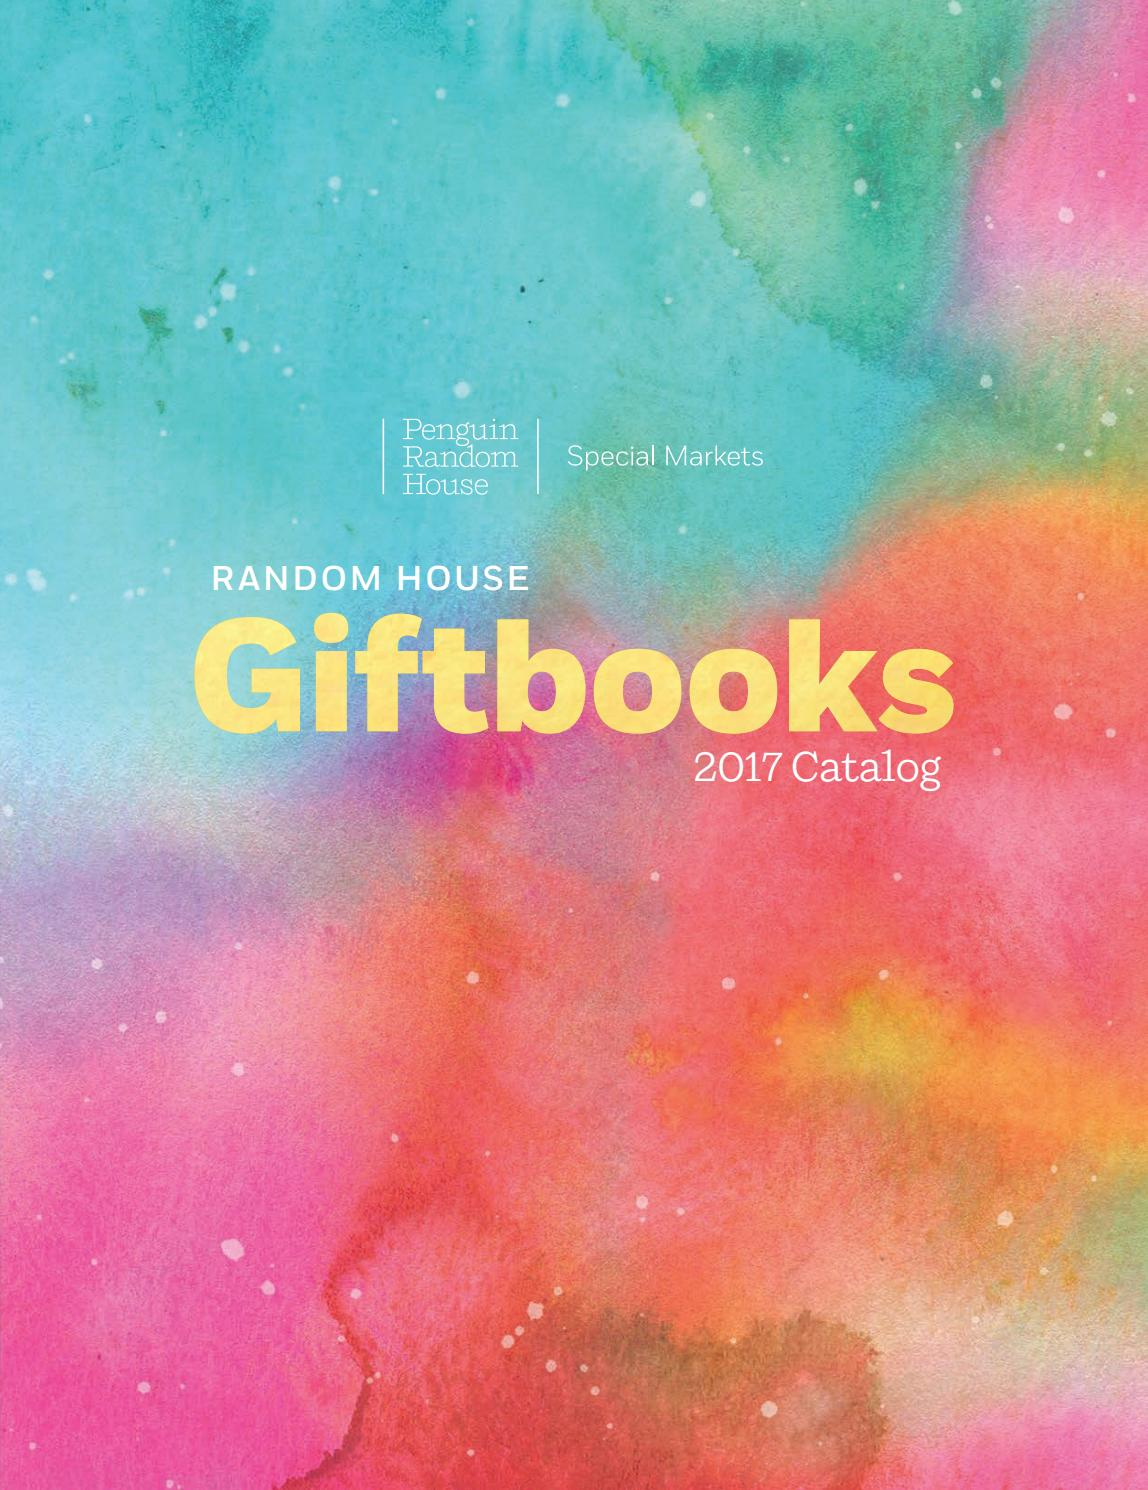 d70c1249519d Random House Giftbooks 2017 Catalog by Penguin Random House Special Markets  - issuu